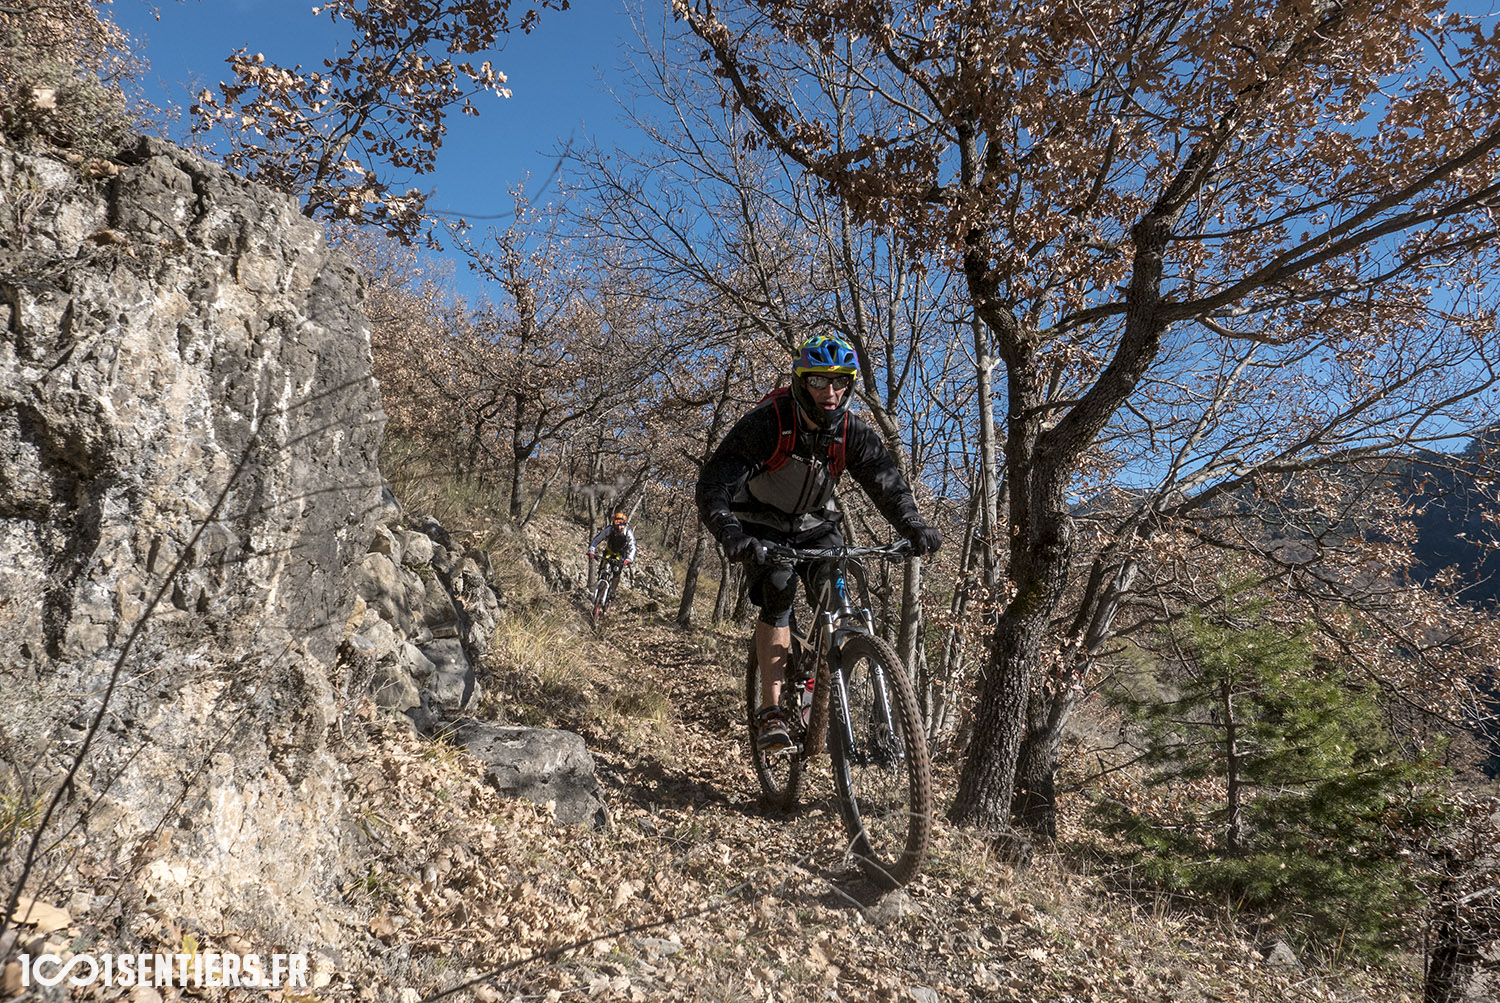 1001sentiers-session-enduro-alpes-maritimes-vtt-p1100316